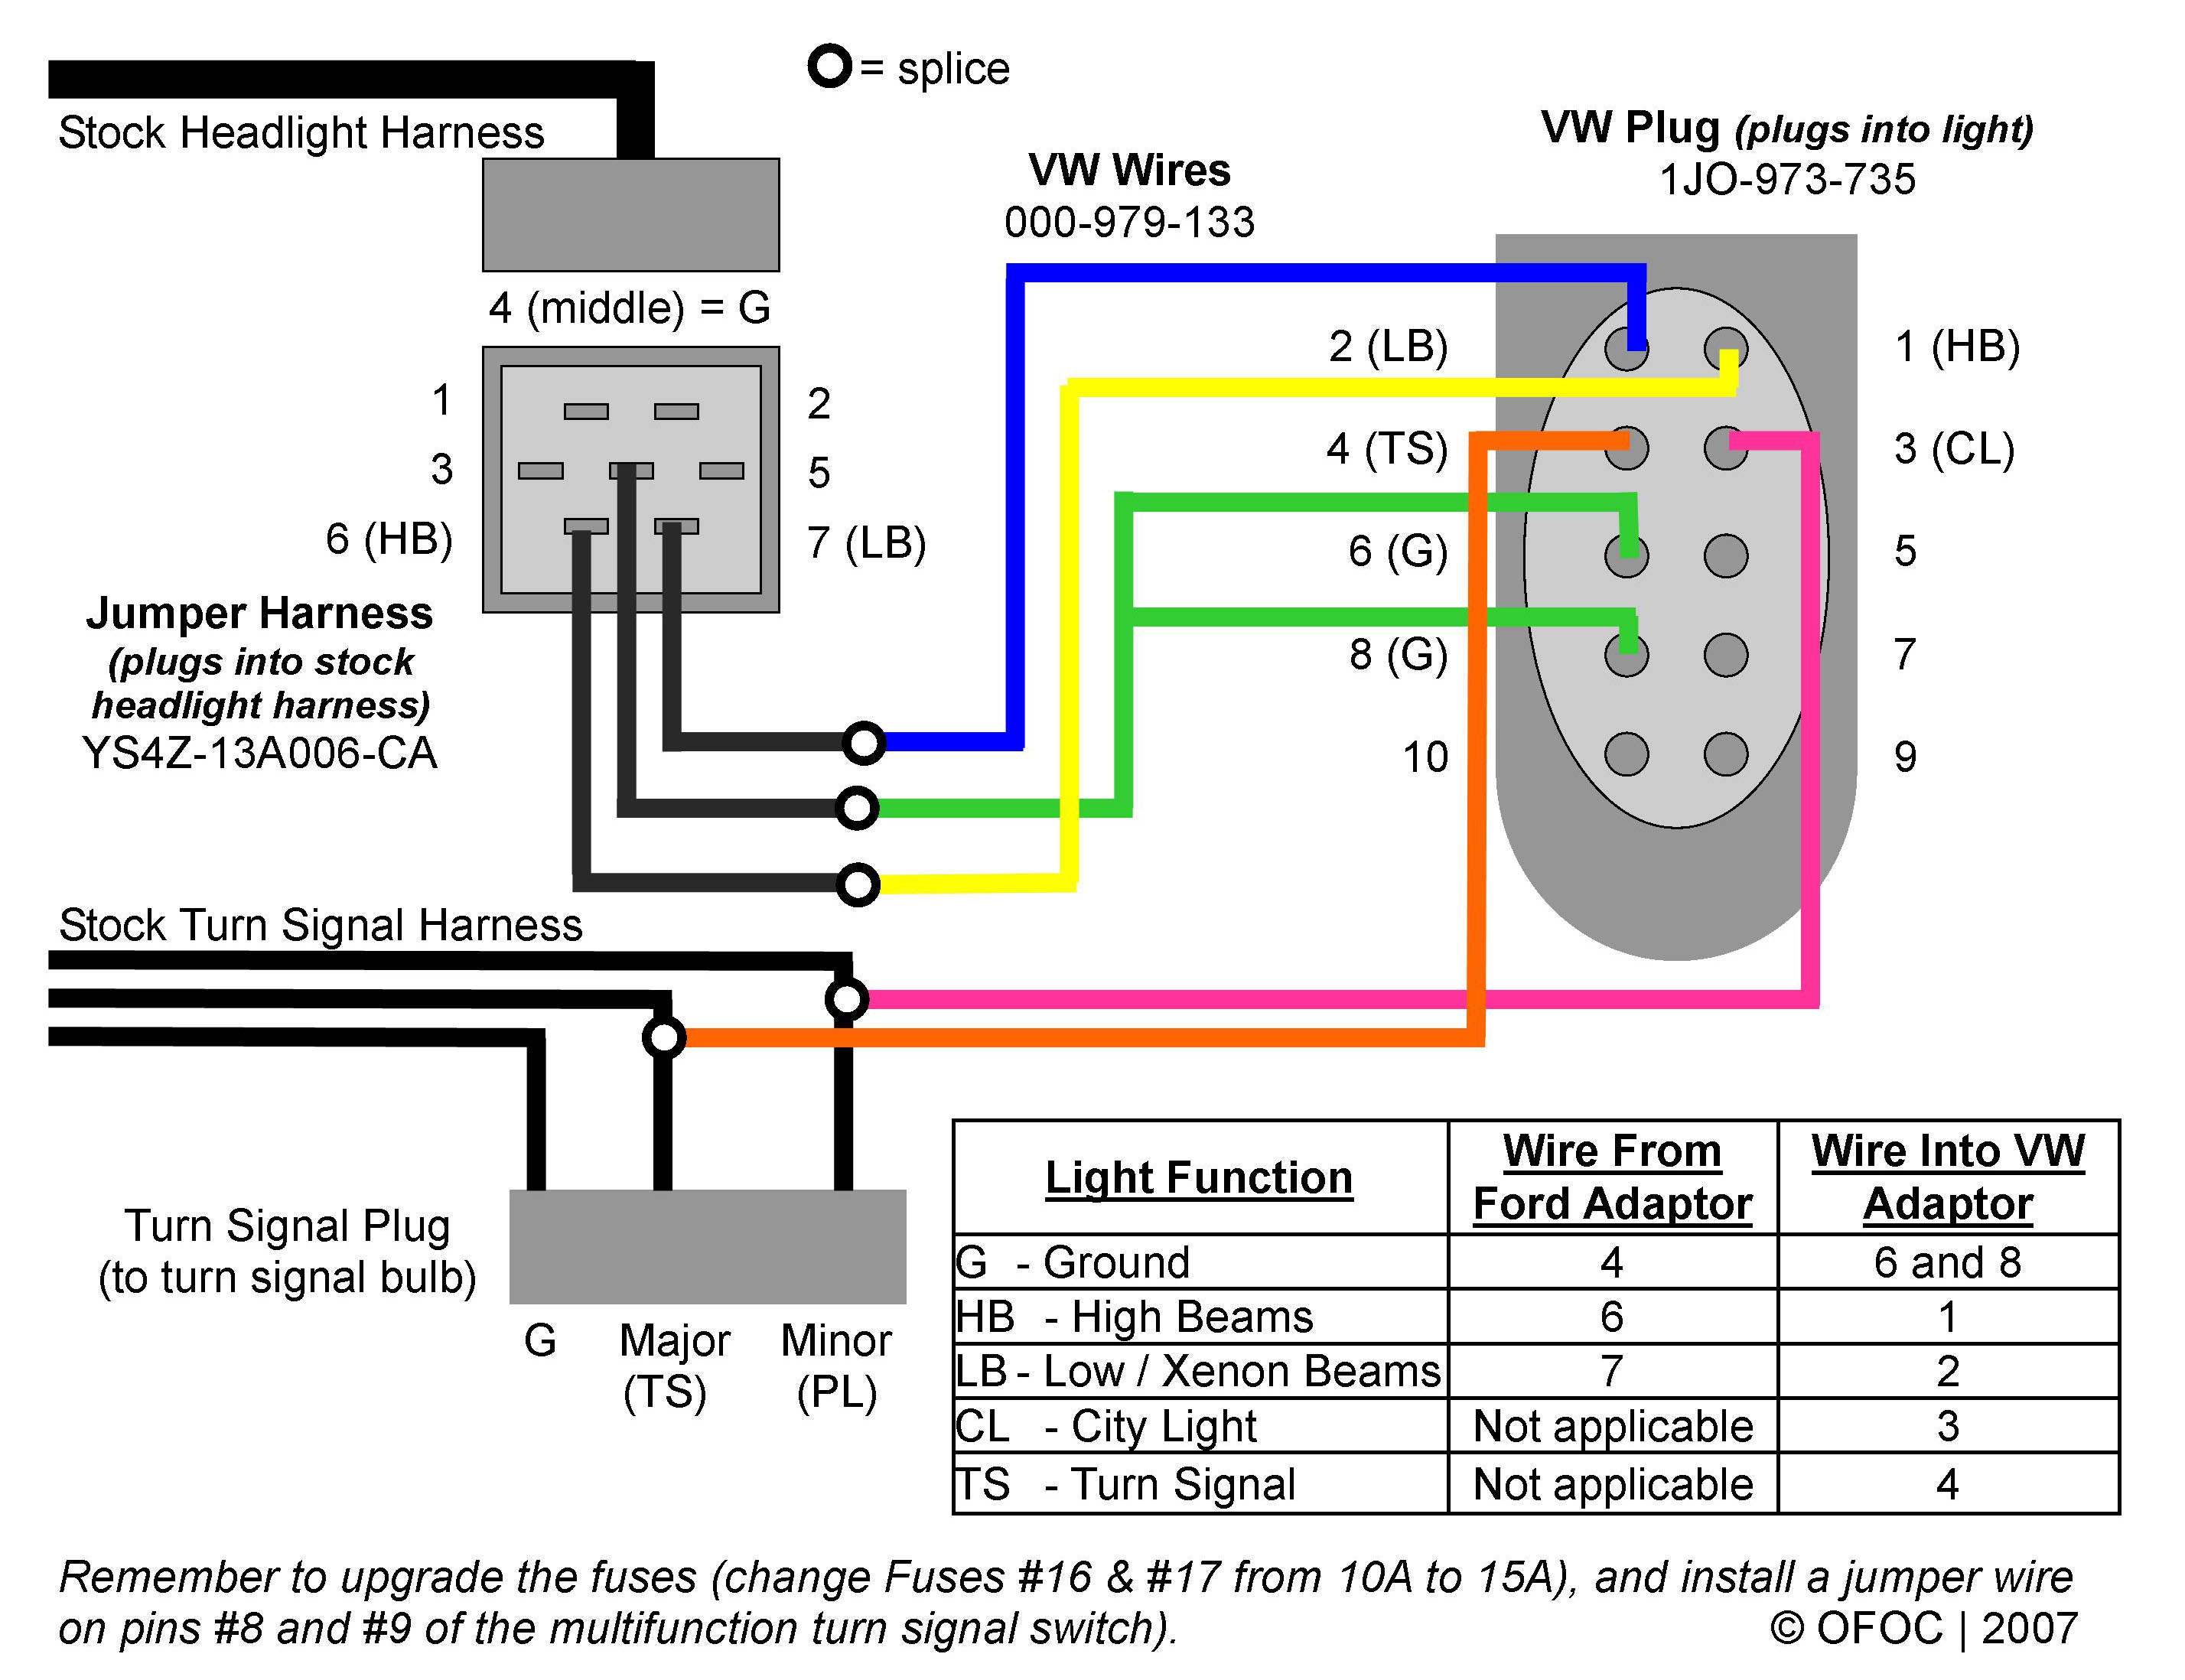 wiringschematic how to vw wiring hack (convert your car to euro mach headlights 2012 ford focus headlight wiring diagram at gsmx.co